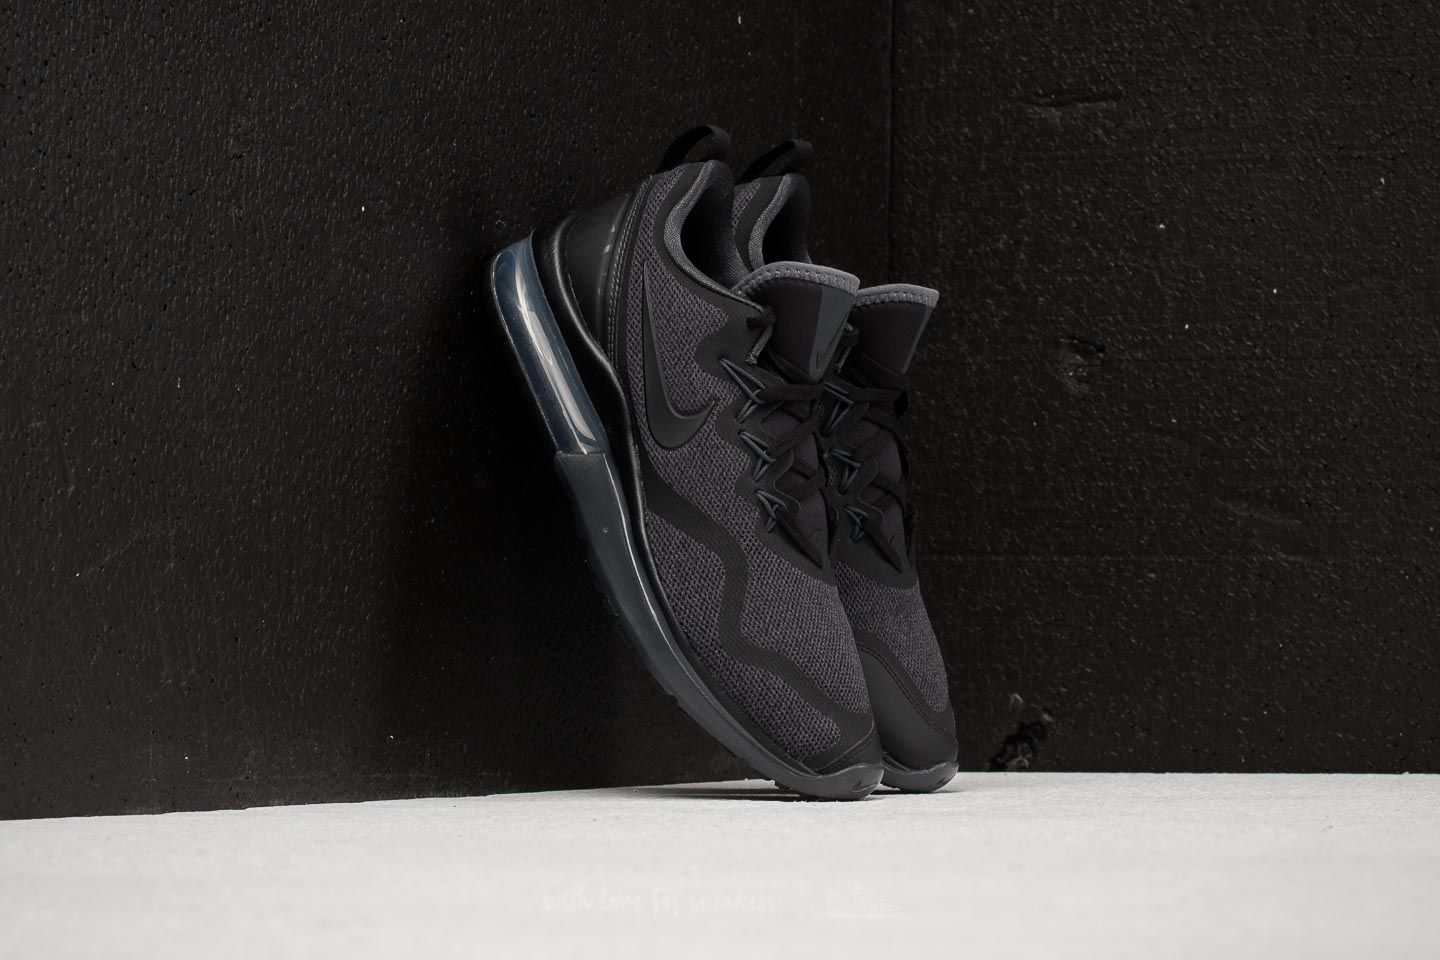 Nike Air Max Fury WMNS Black/ Black-Anthracite